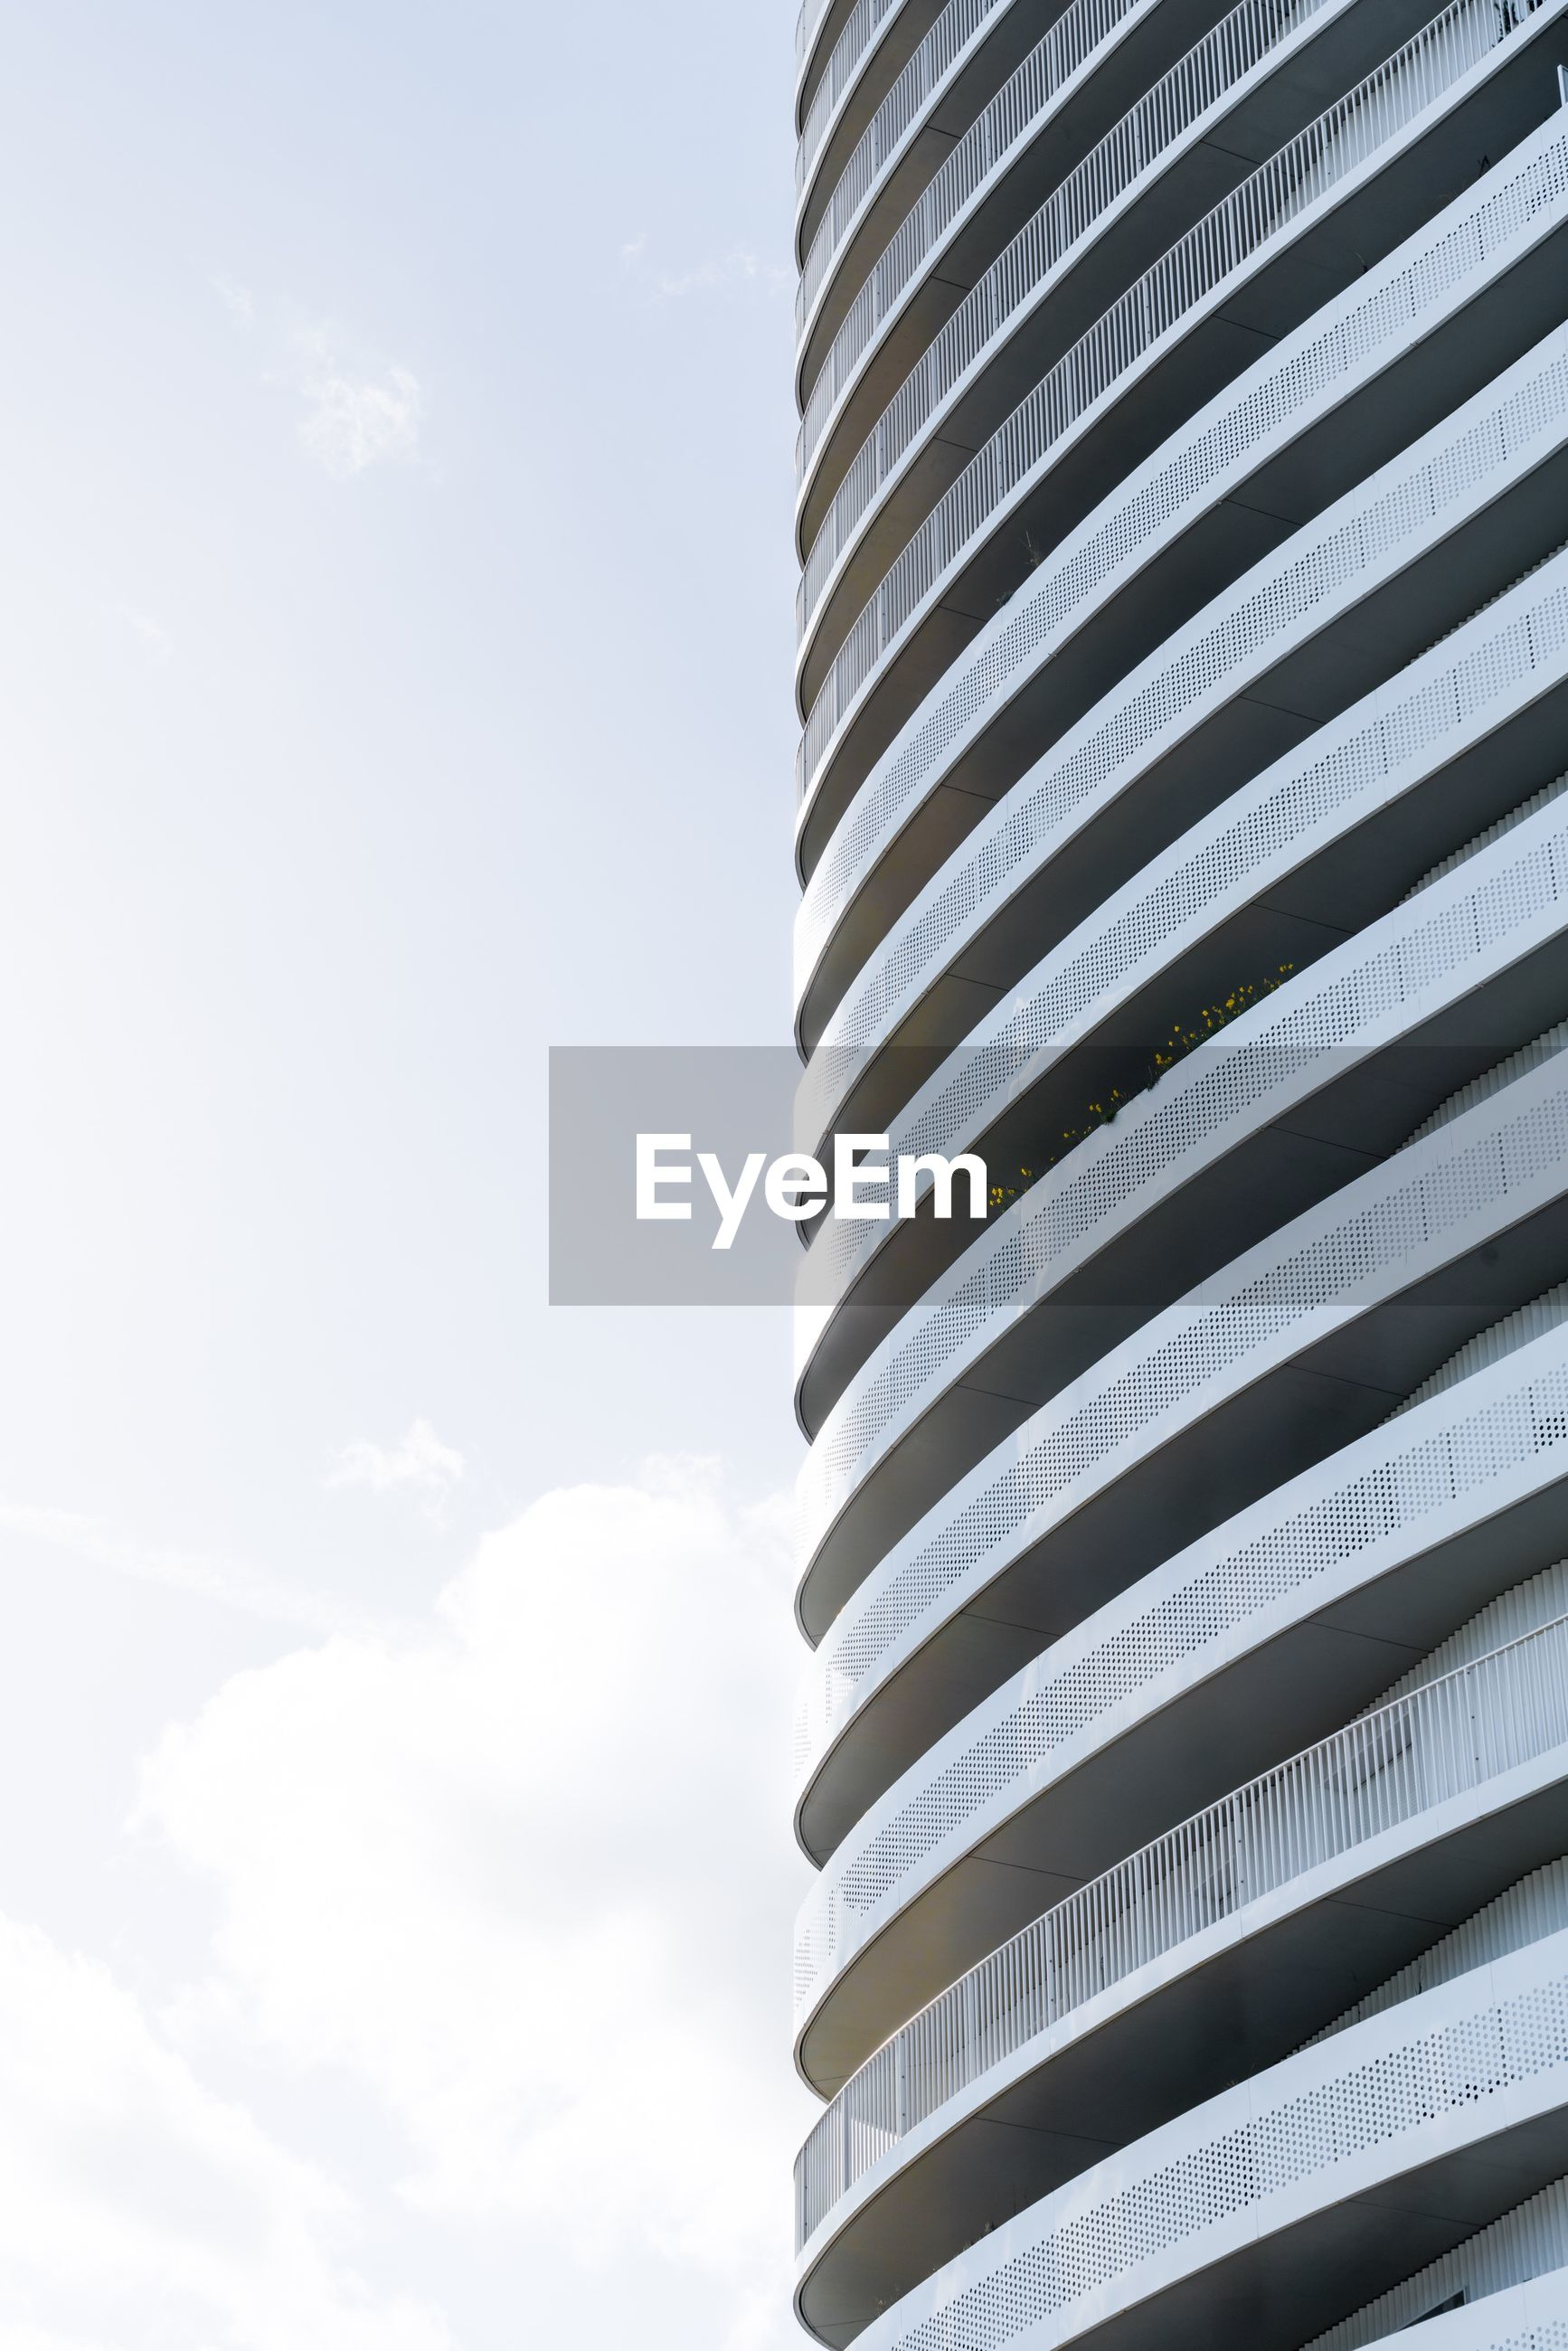 sky, architecture, building exterior, cloud - sky, built structure, low angle view, day, pattern, no people, nature, outdoors, building, office building exterior, modern, striped, sunlight, city, office, close-up, tall - high, skyscraper